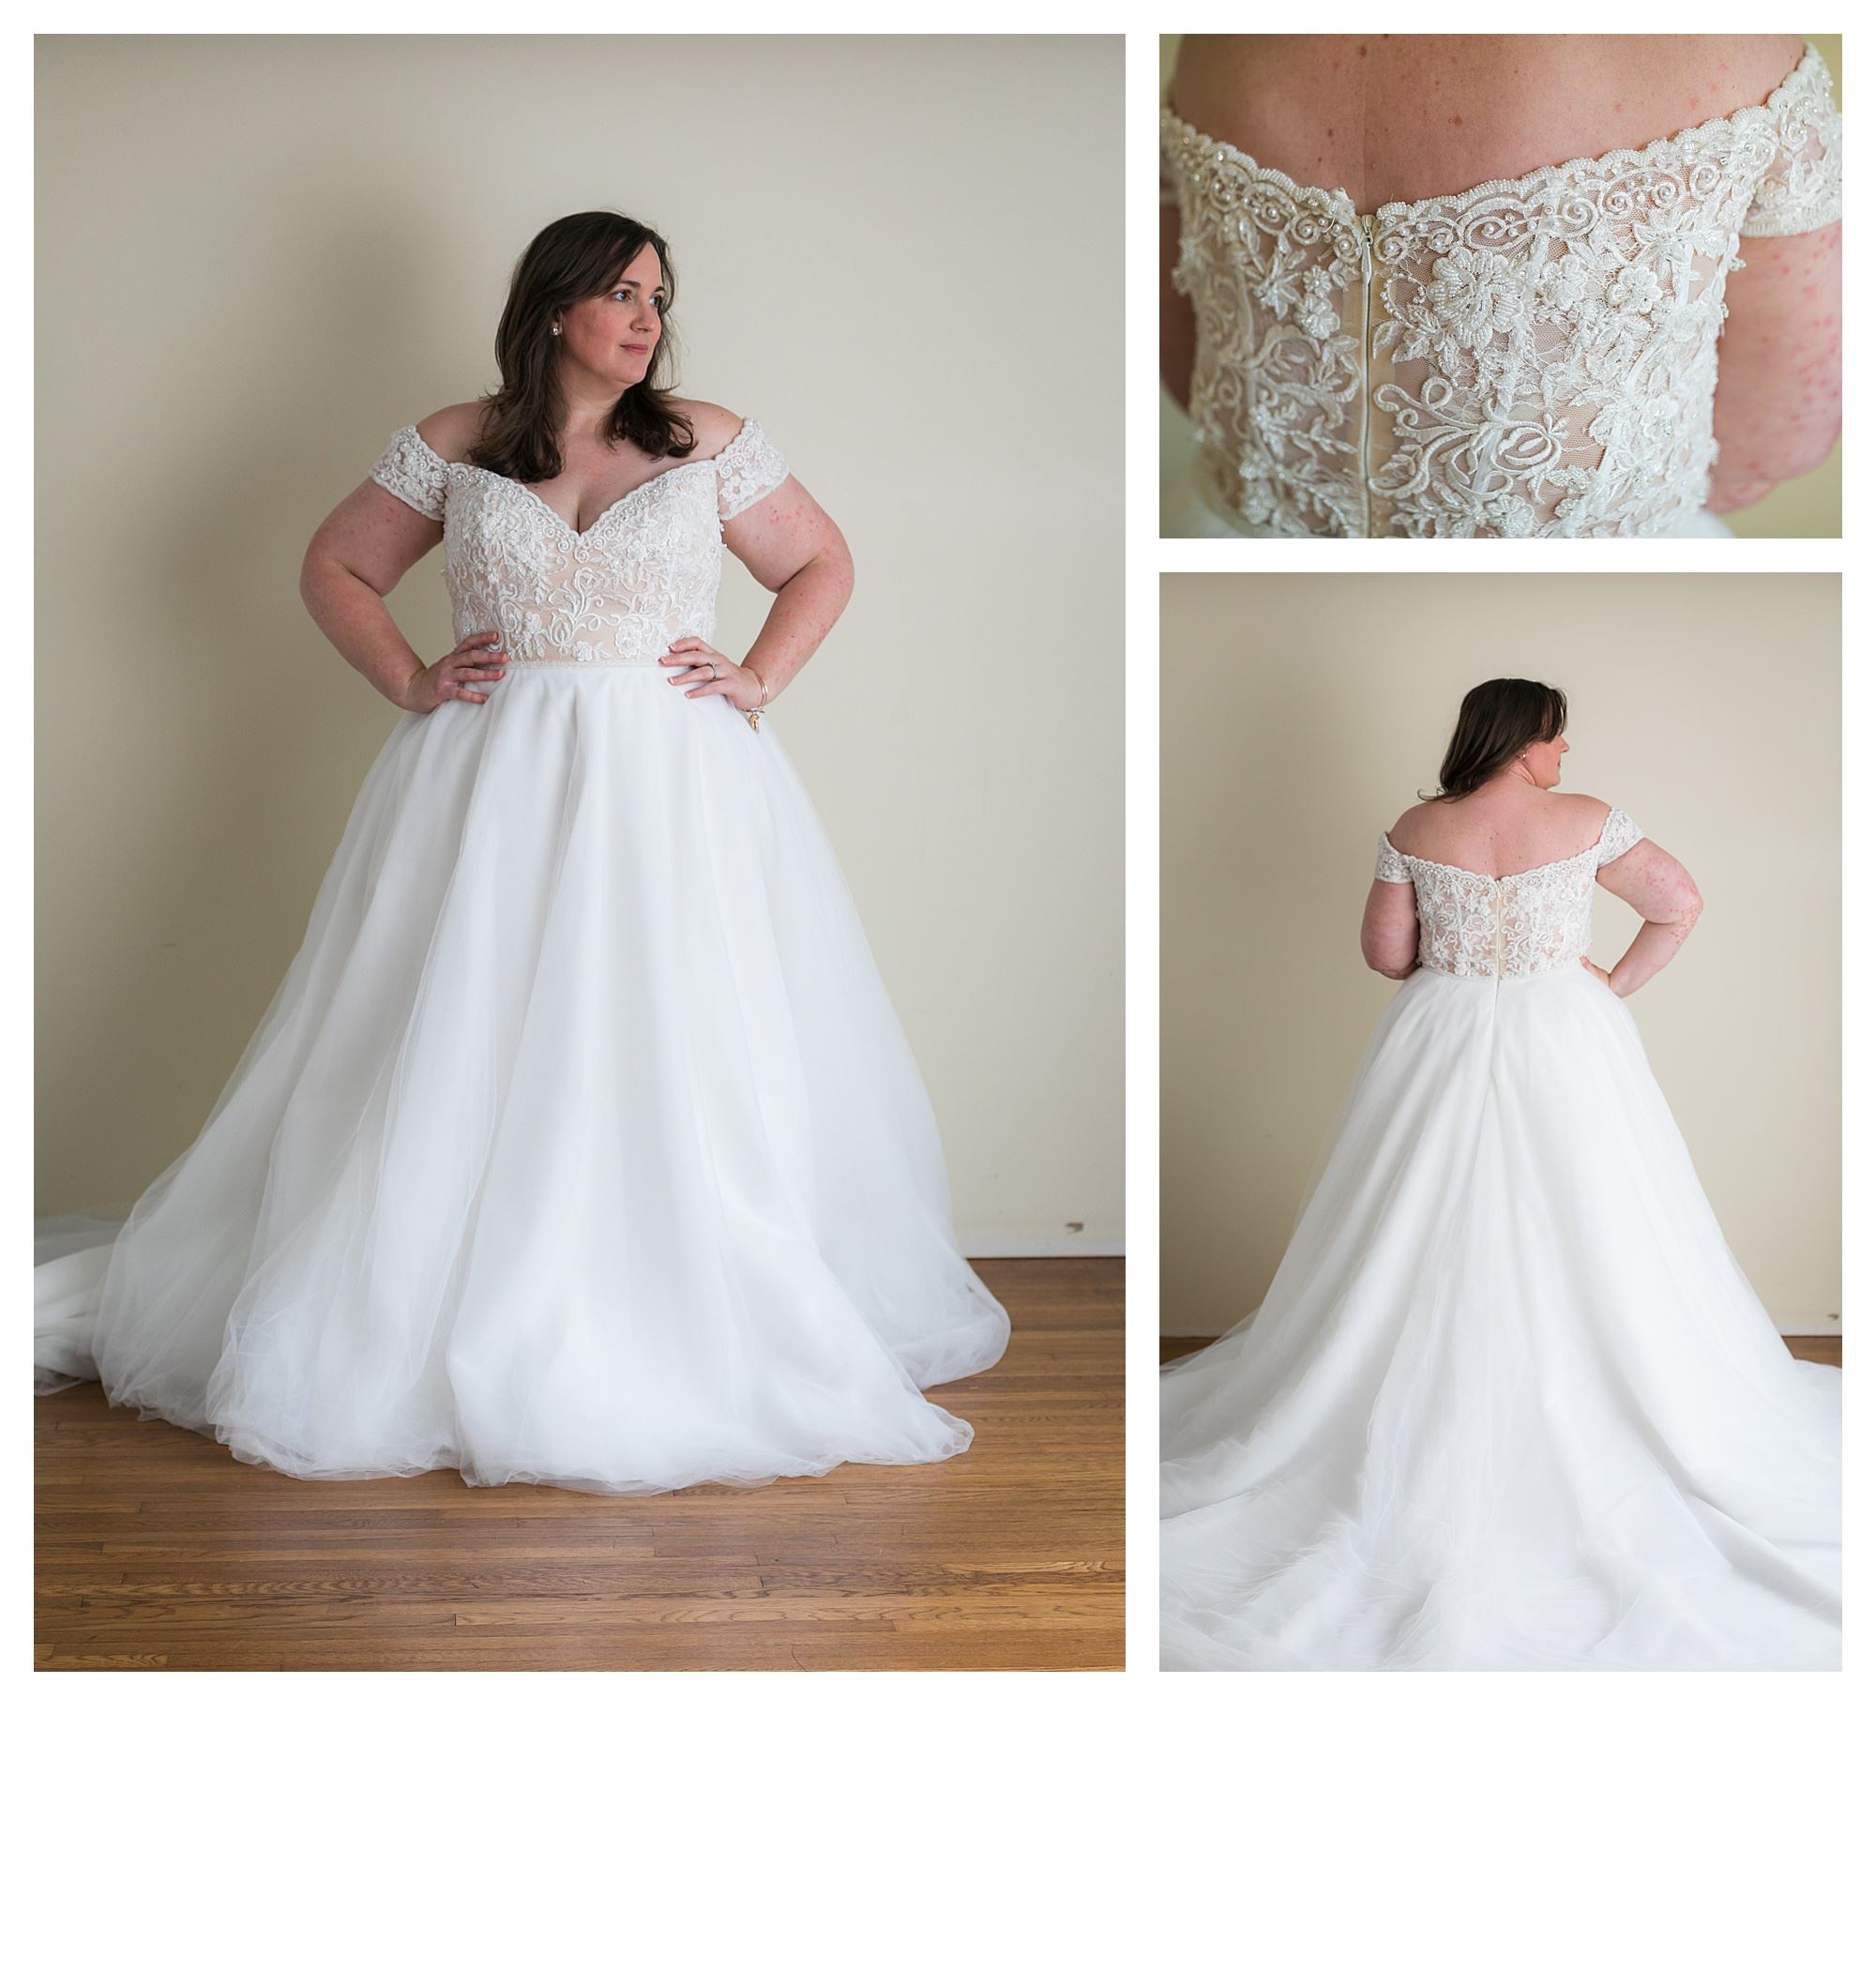 Sofia - Size 20 - Ivory/Lt Nude - Originally priced $1699 - Sample box price $1199